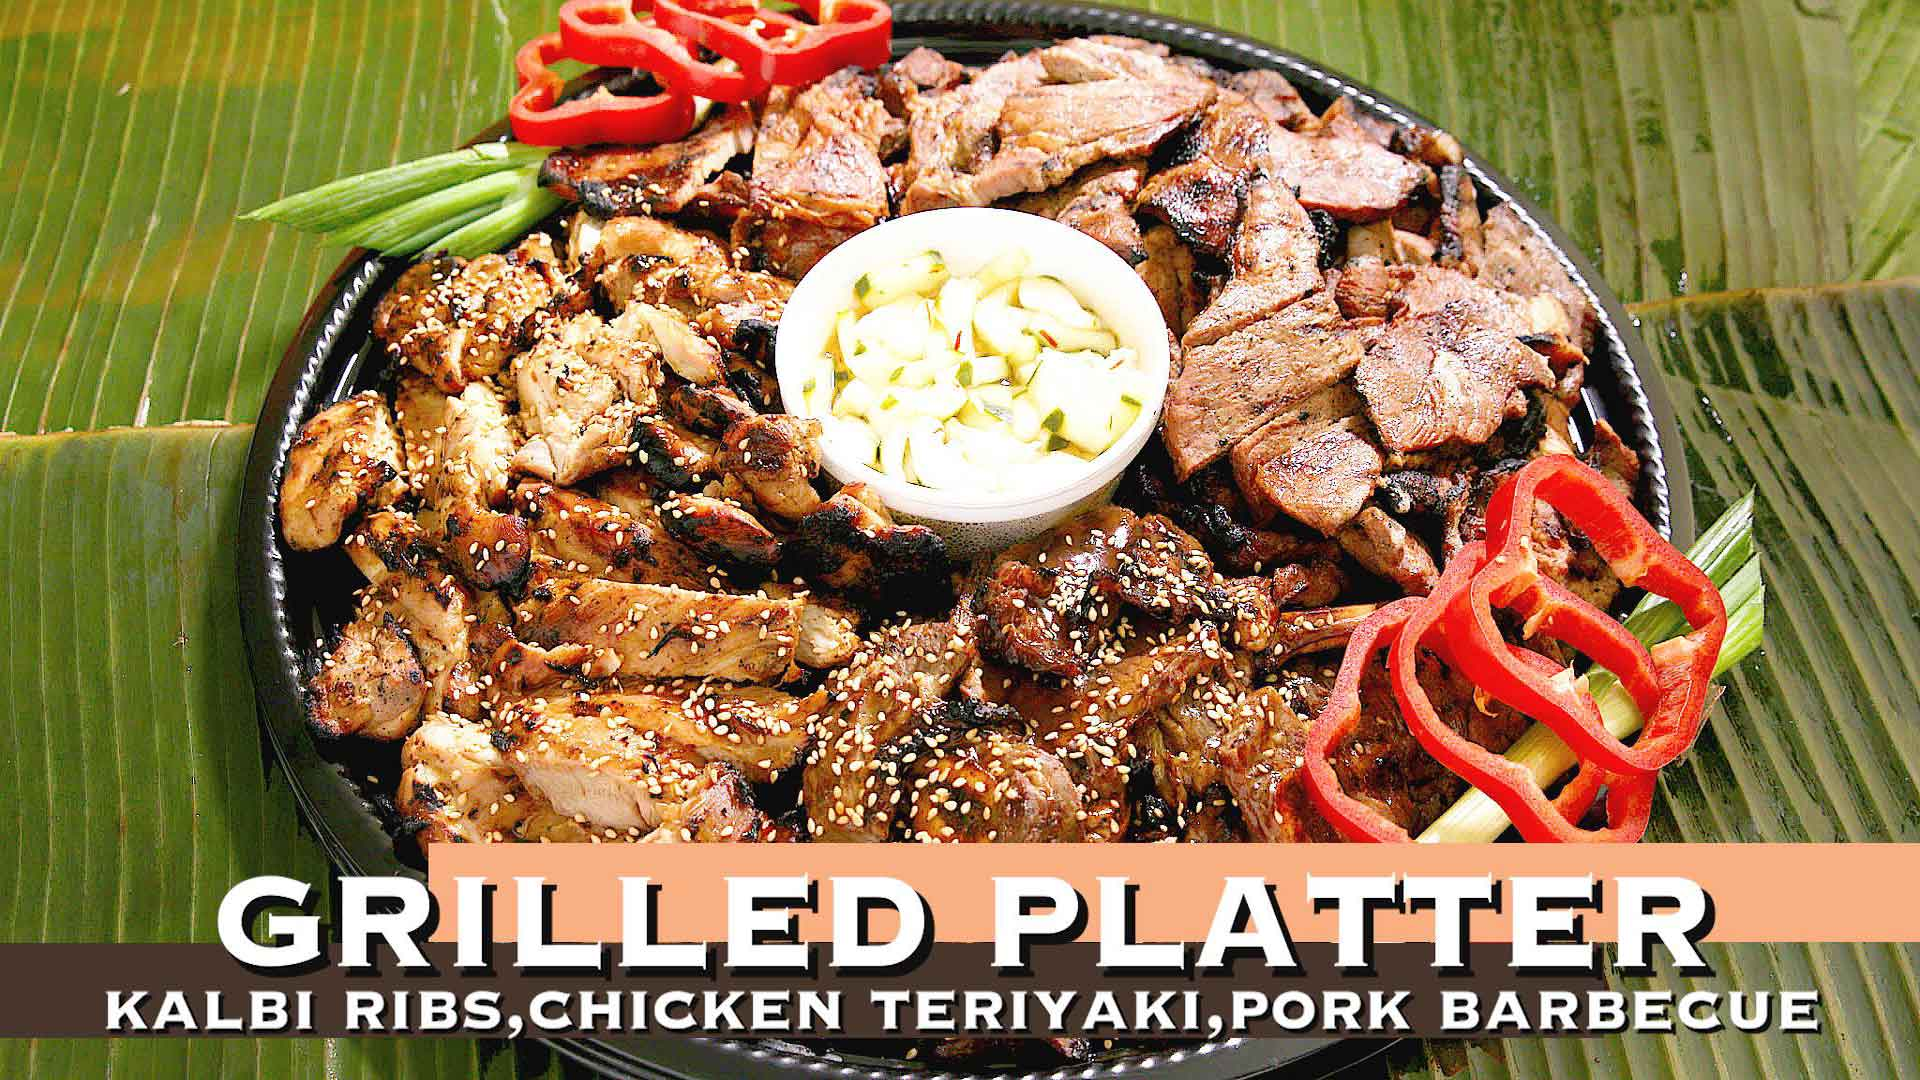 house-of-grill-grilled-platter